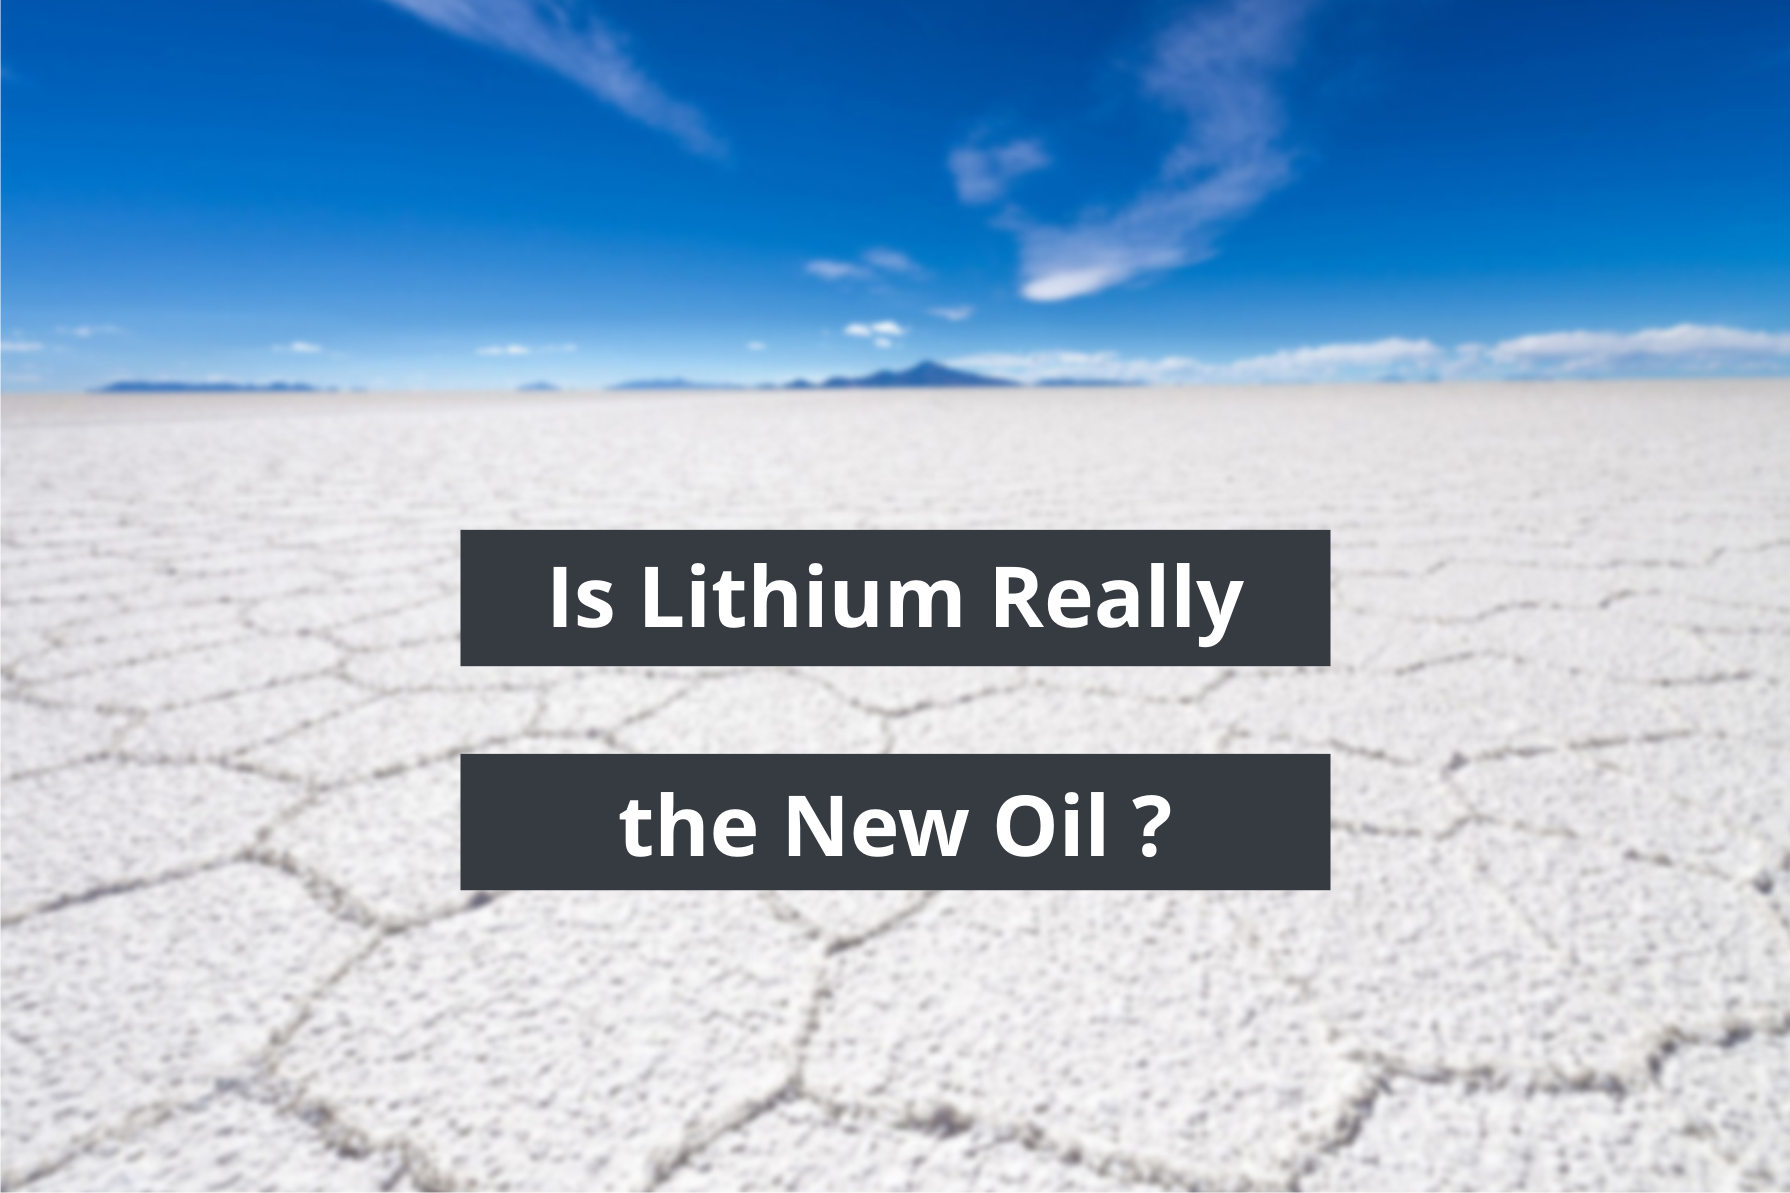 Is Litihium Really the New Oil